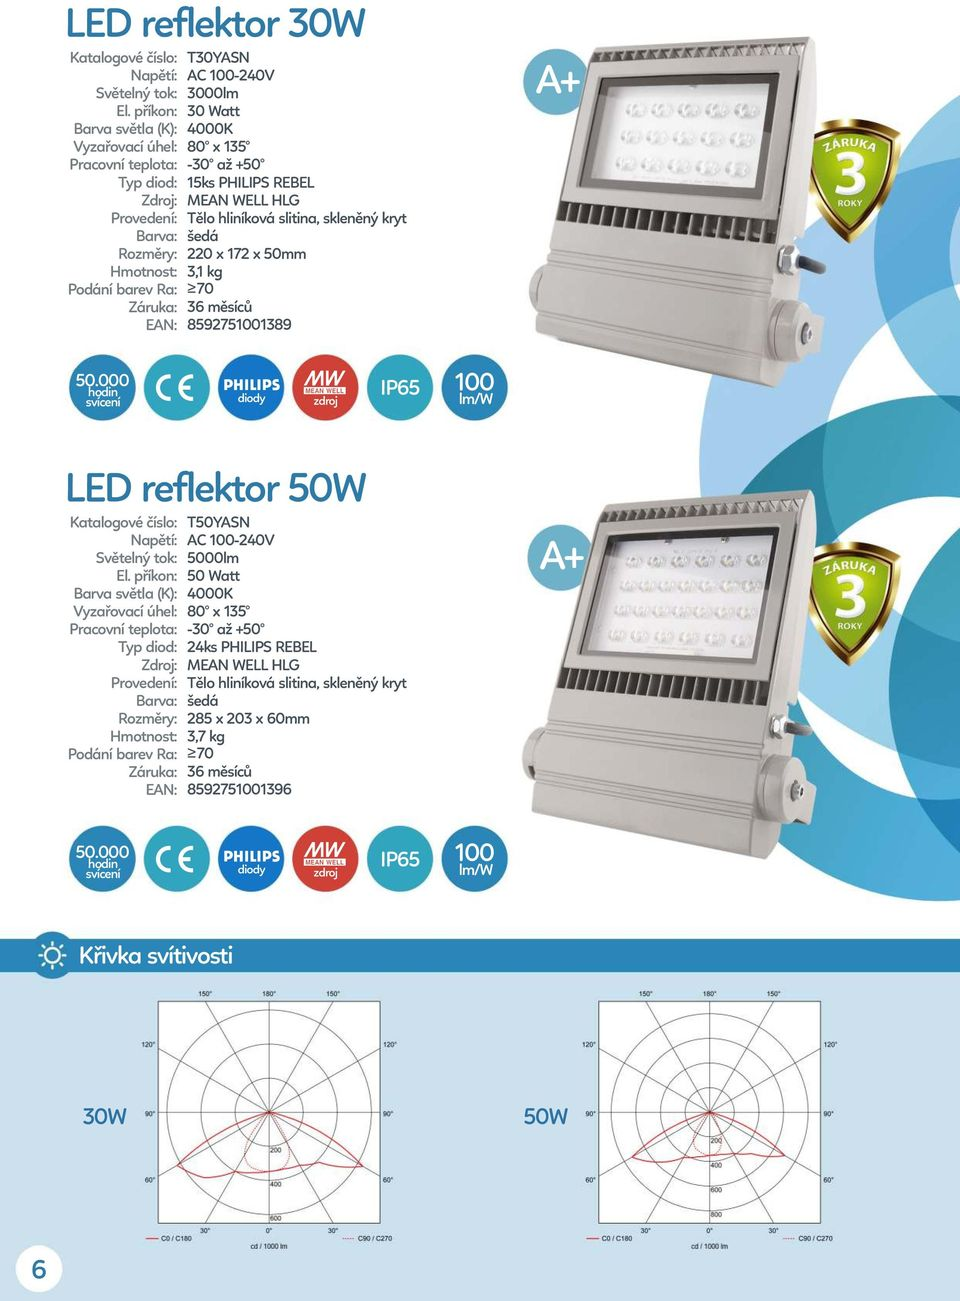 LED reflektor 50W T50YASN AC 100-240V 5000lm 50 Watt 80 x 135 24ks PHILIPS REBEL Tělo